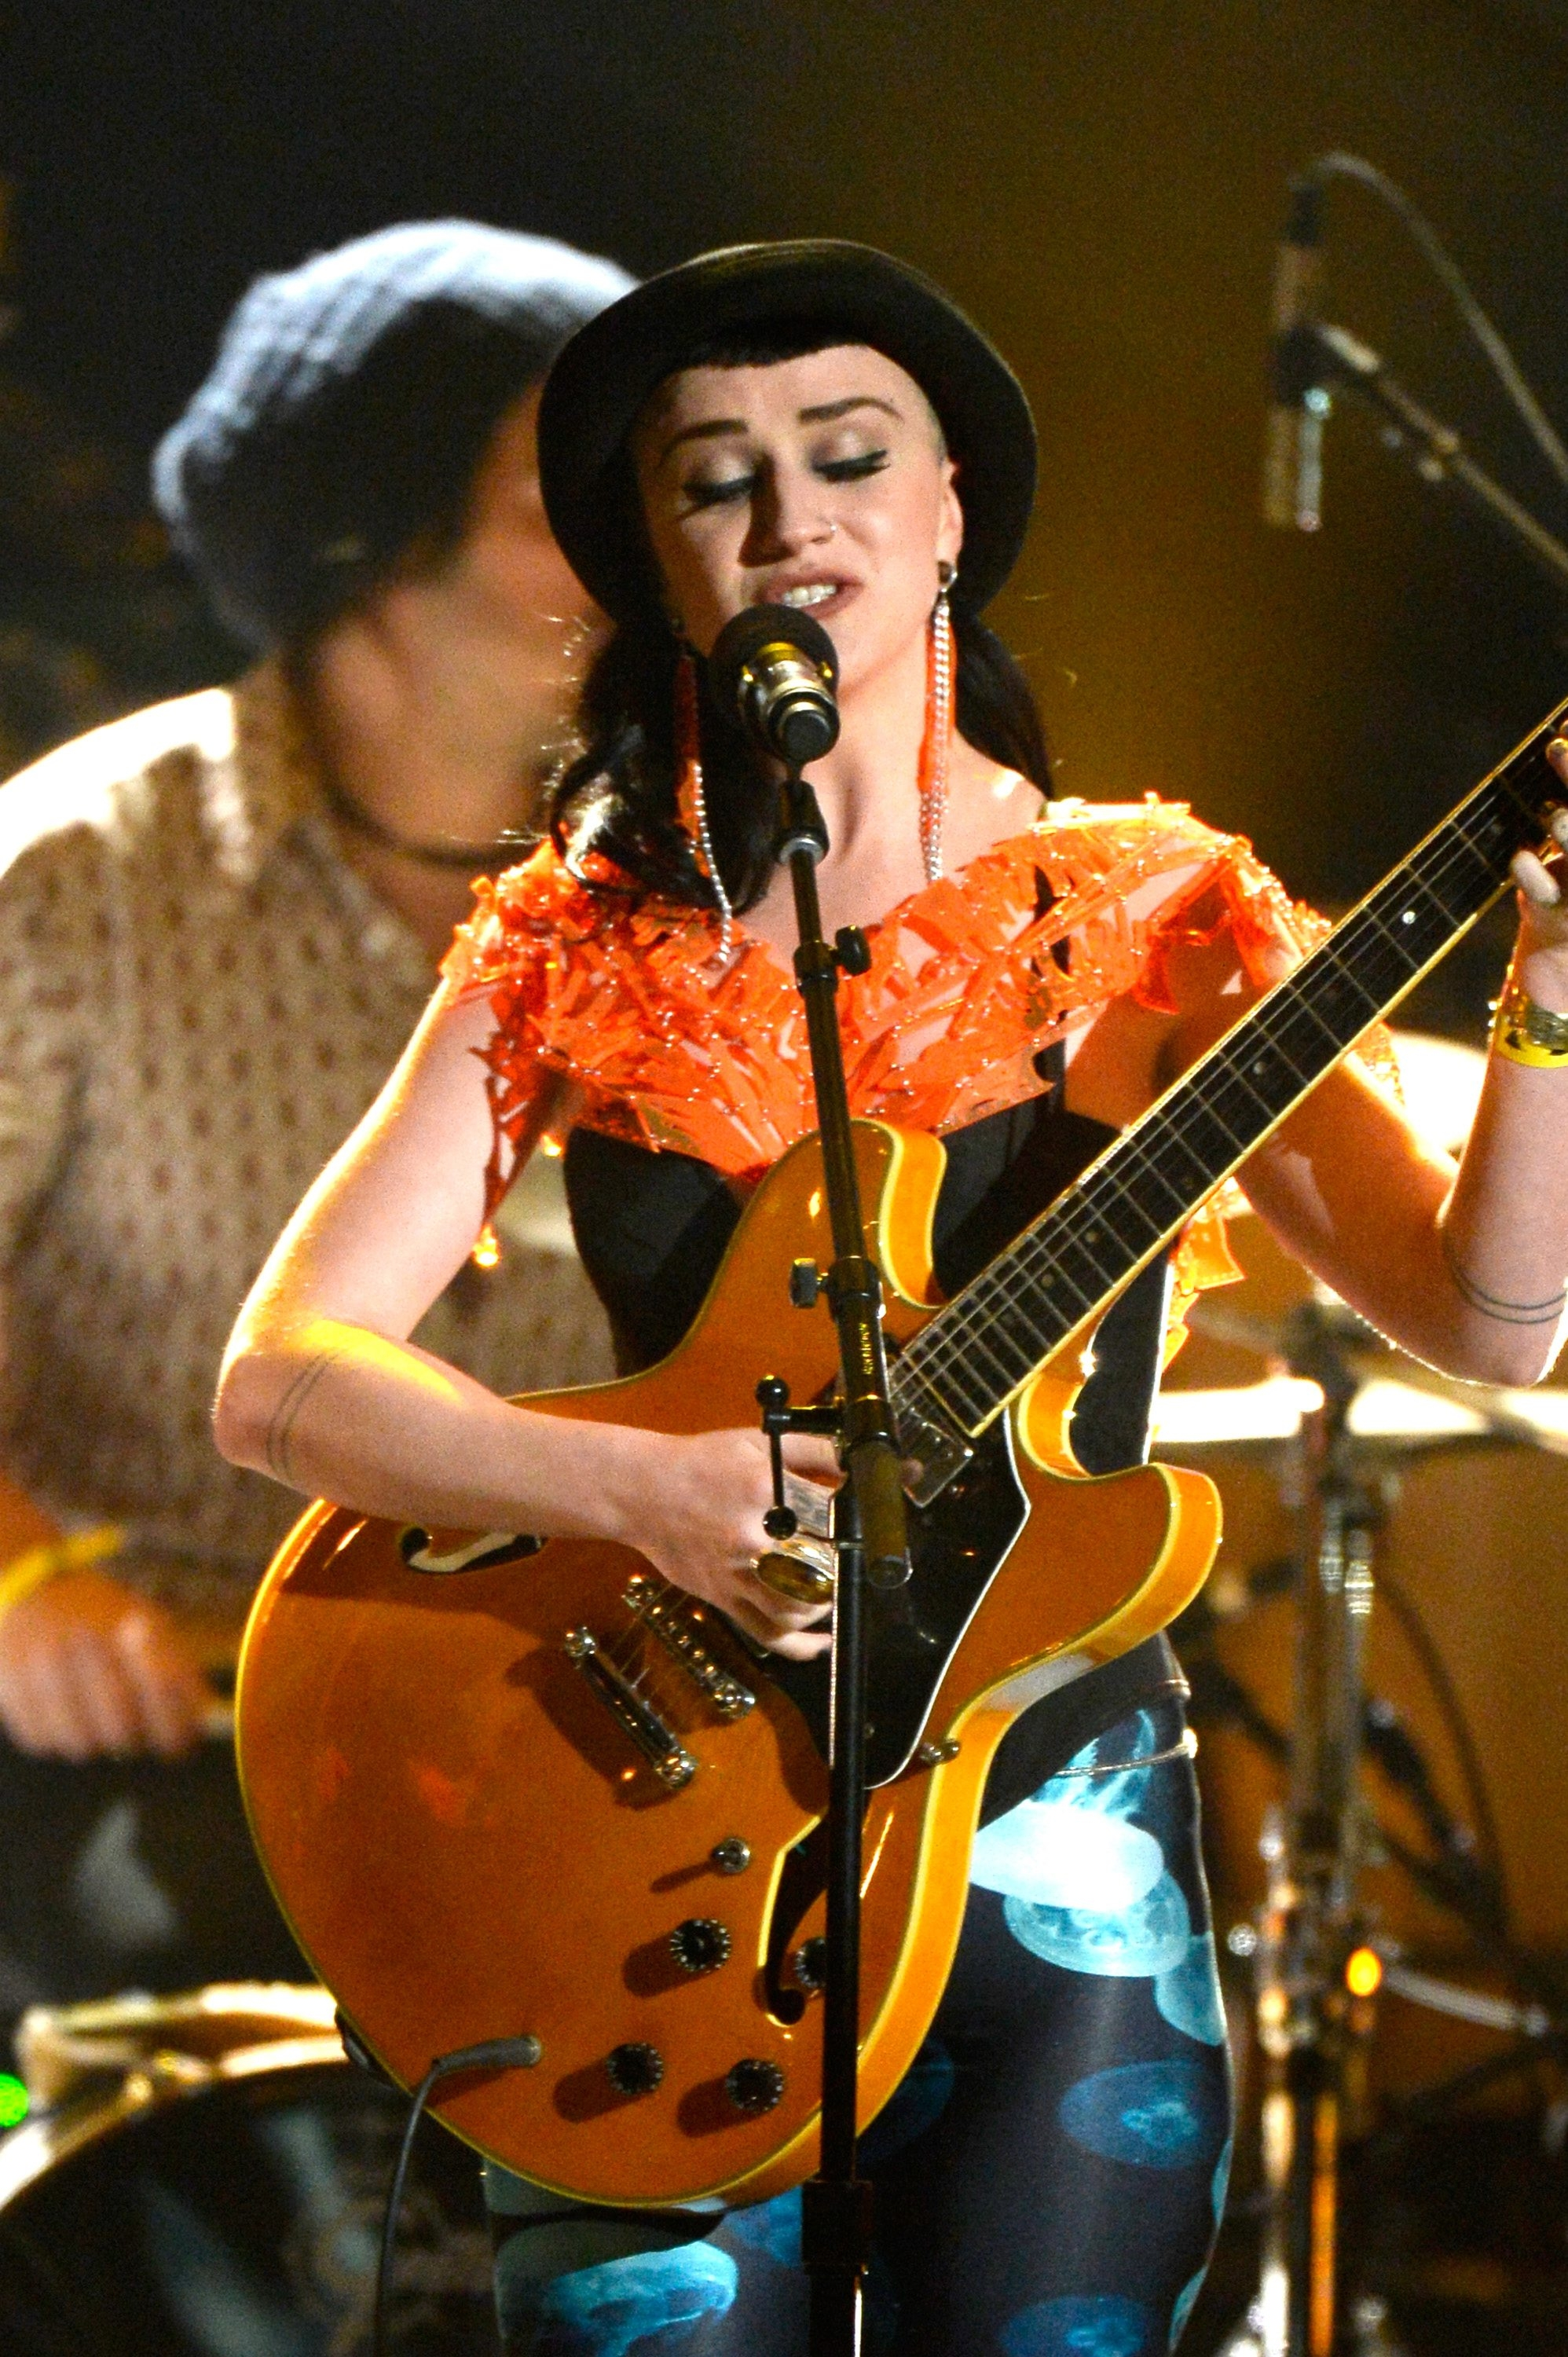 LOS ANGELES, CA - JANUARY 26:  Musician Nai Palm of Hiatus Kaiyote performs onstage during the 56th GRAMMY Awards Pre-Telecast Show at Nokia Theatre L.A. Live on January 26, 2014 in Los Angeles, California.  (Photo by Kevork Djansezian/Getty Images)